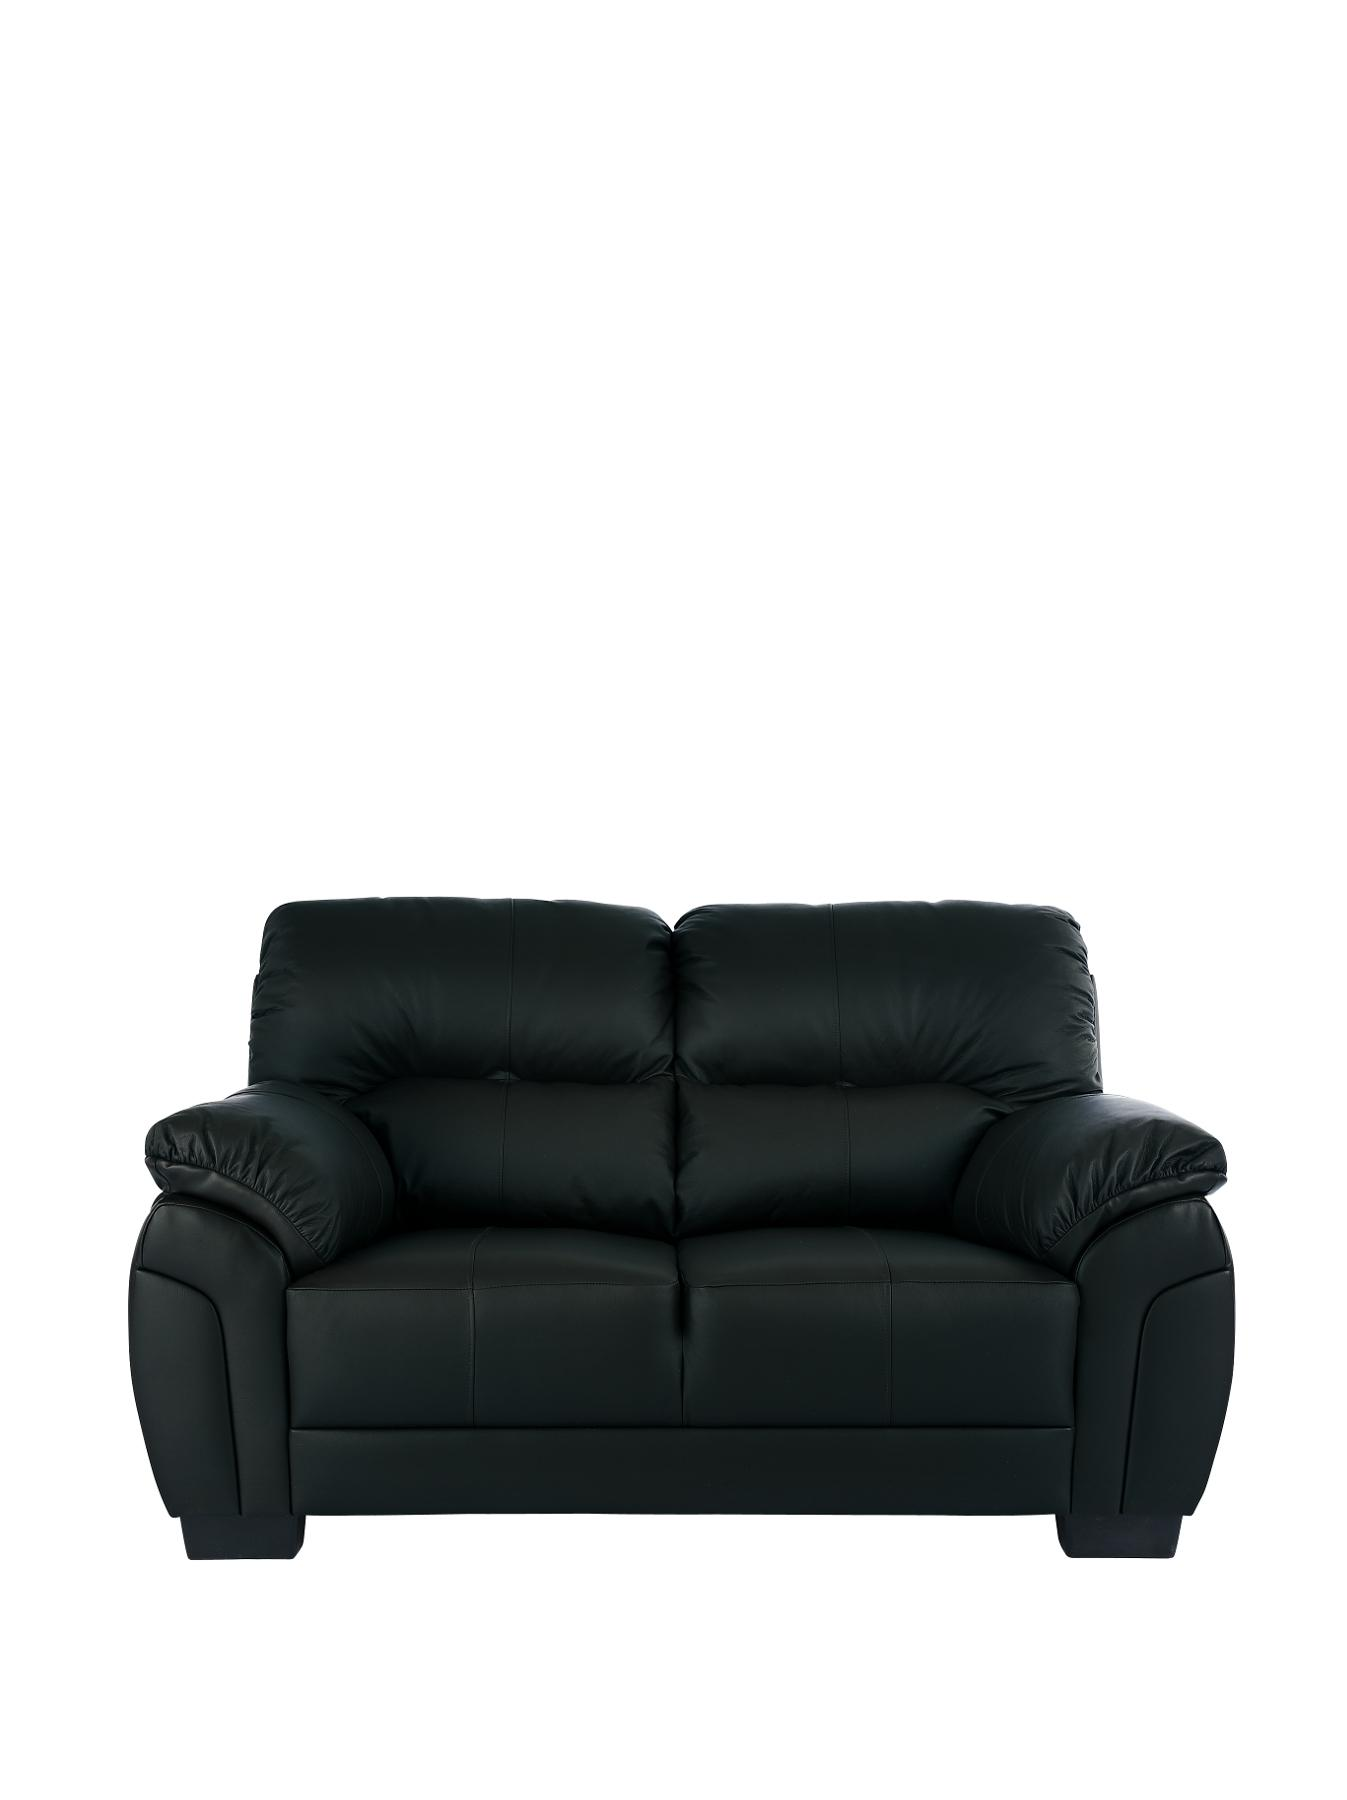 Ancona 2-Seater Sofa - Black, Black,Chocolate